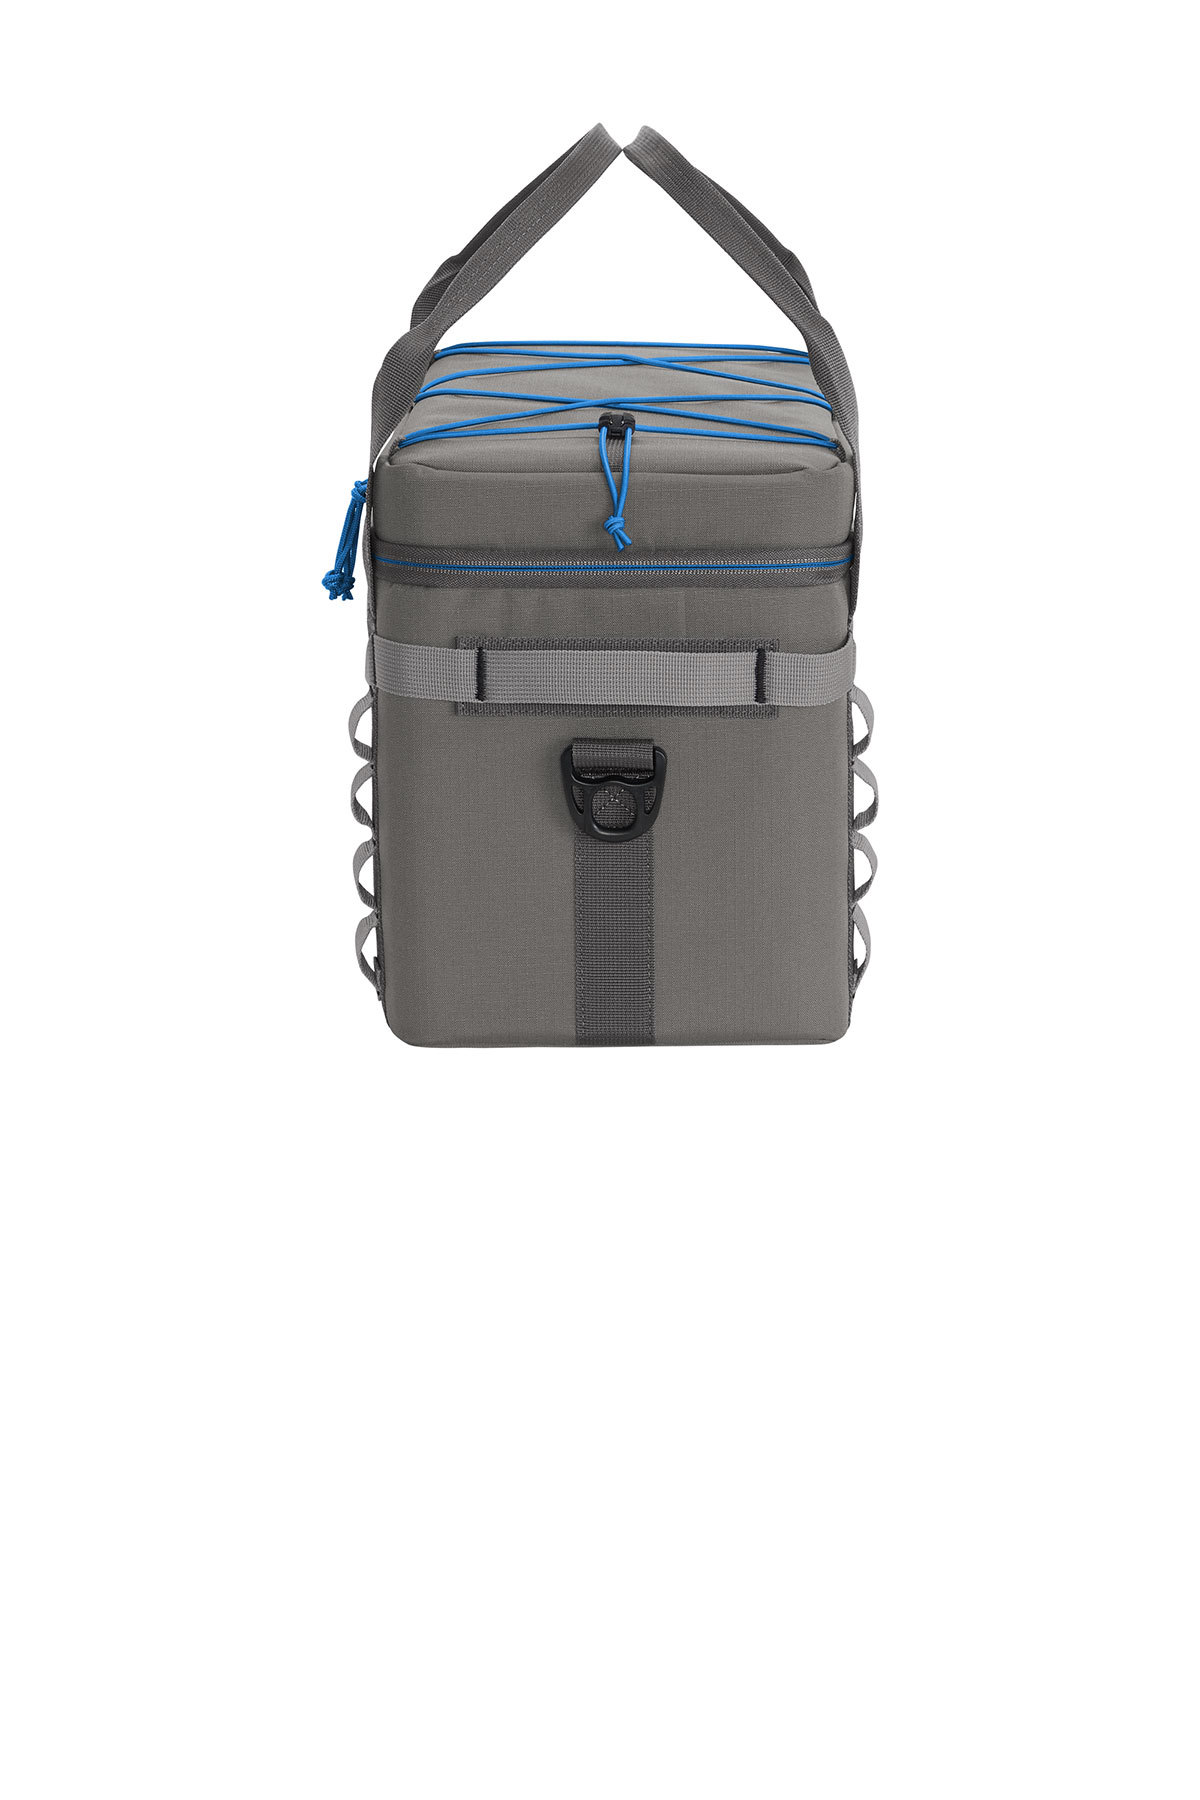 Max Cool Eddie Bauer® 24-Can Cooler - SOLD OUT - BTO1036